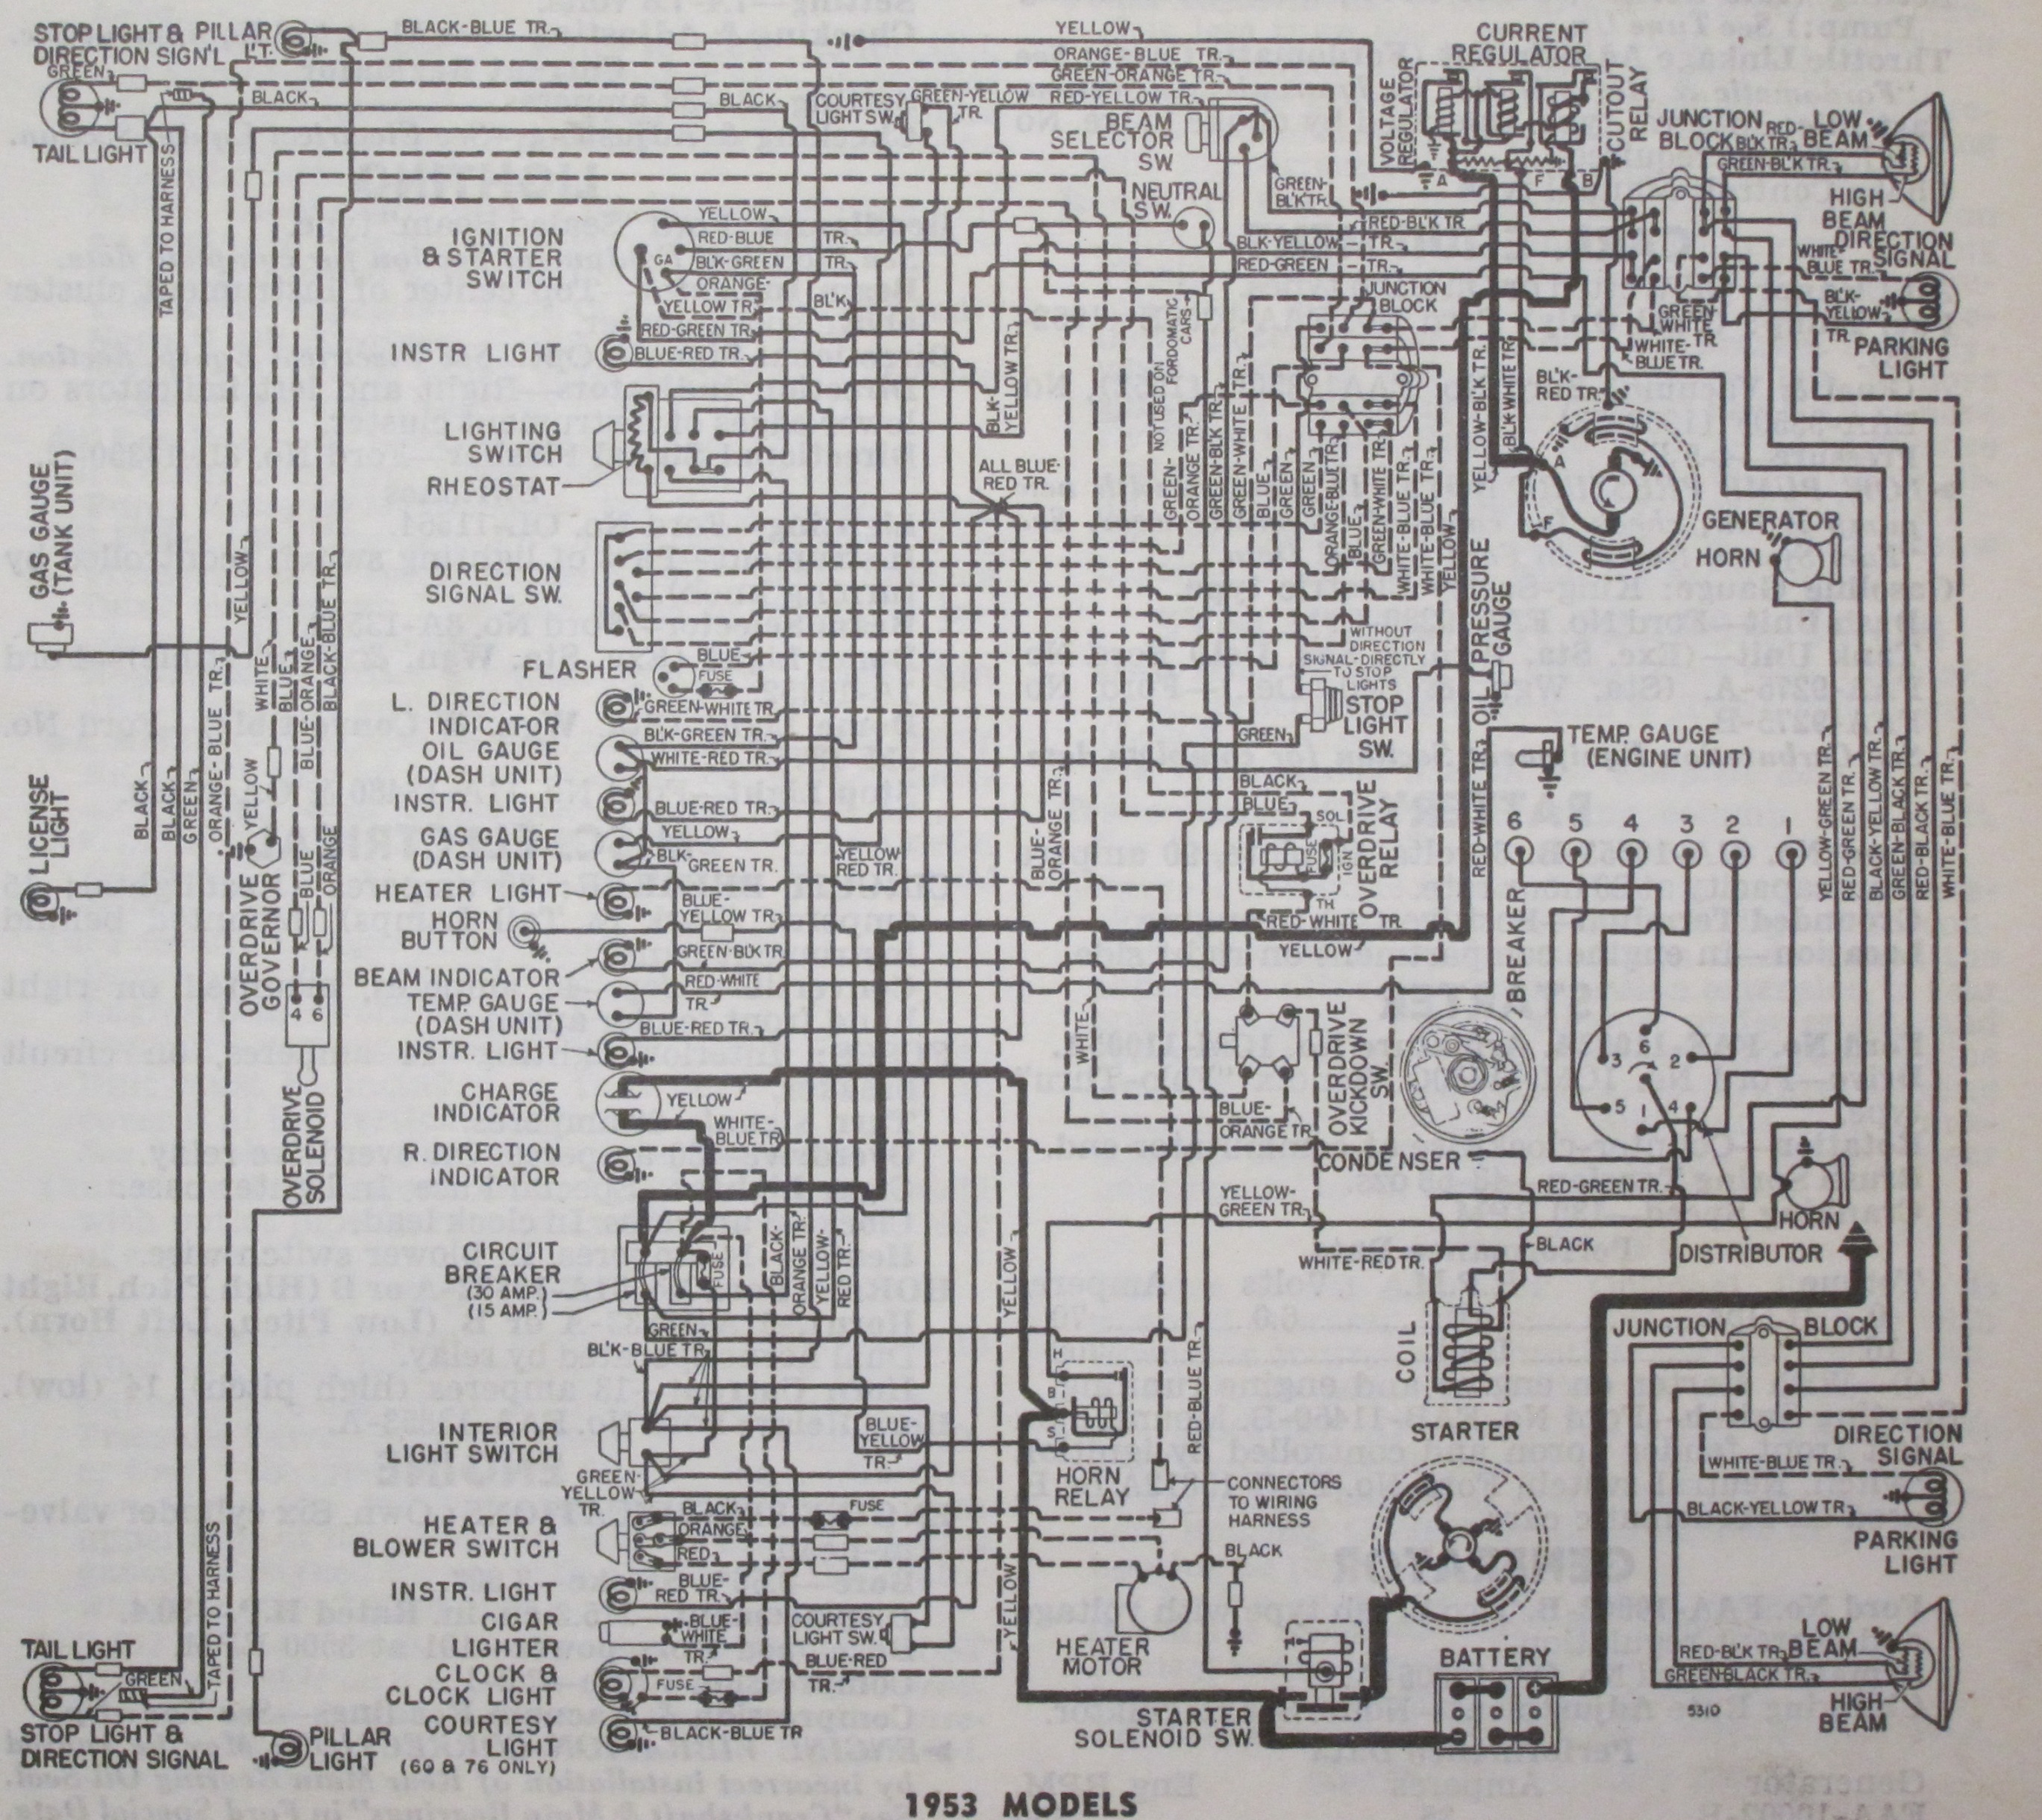 1952 Ford Customline Wiring Diagram Diagrams 54 Chevy Truck Harness 1953 Free Download 1951 Schematic F1